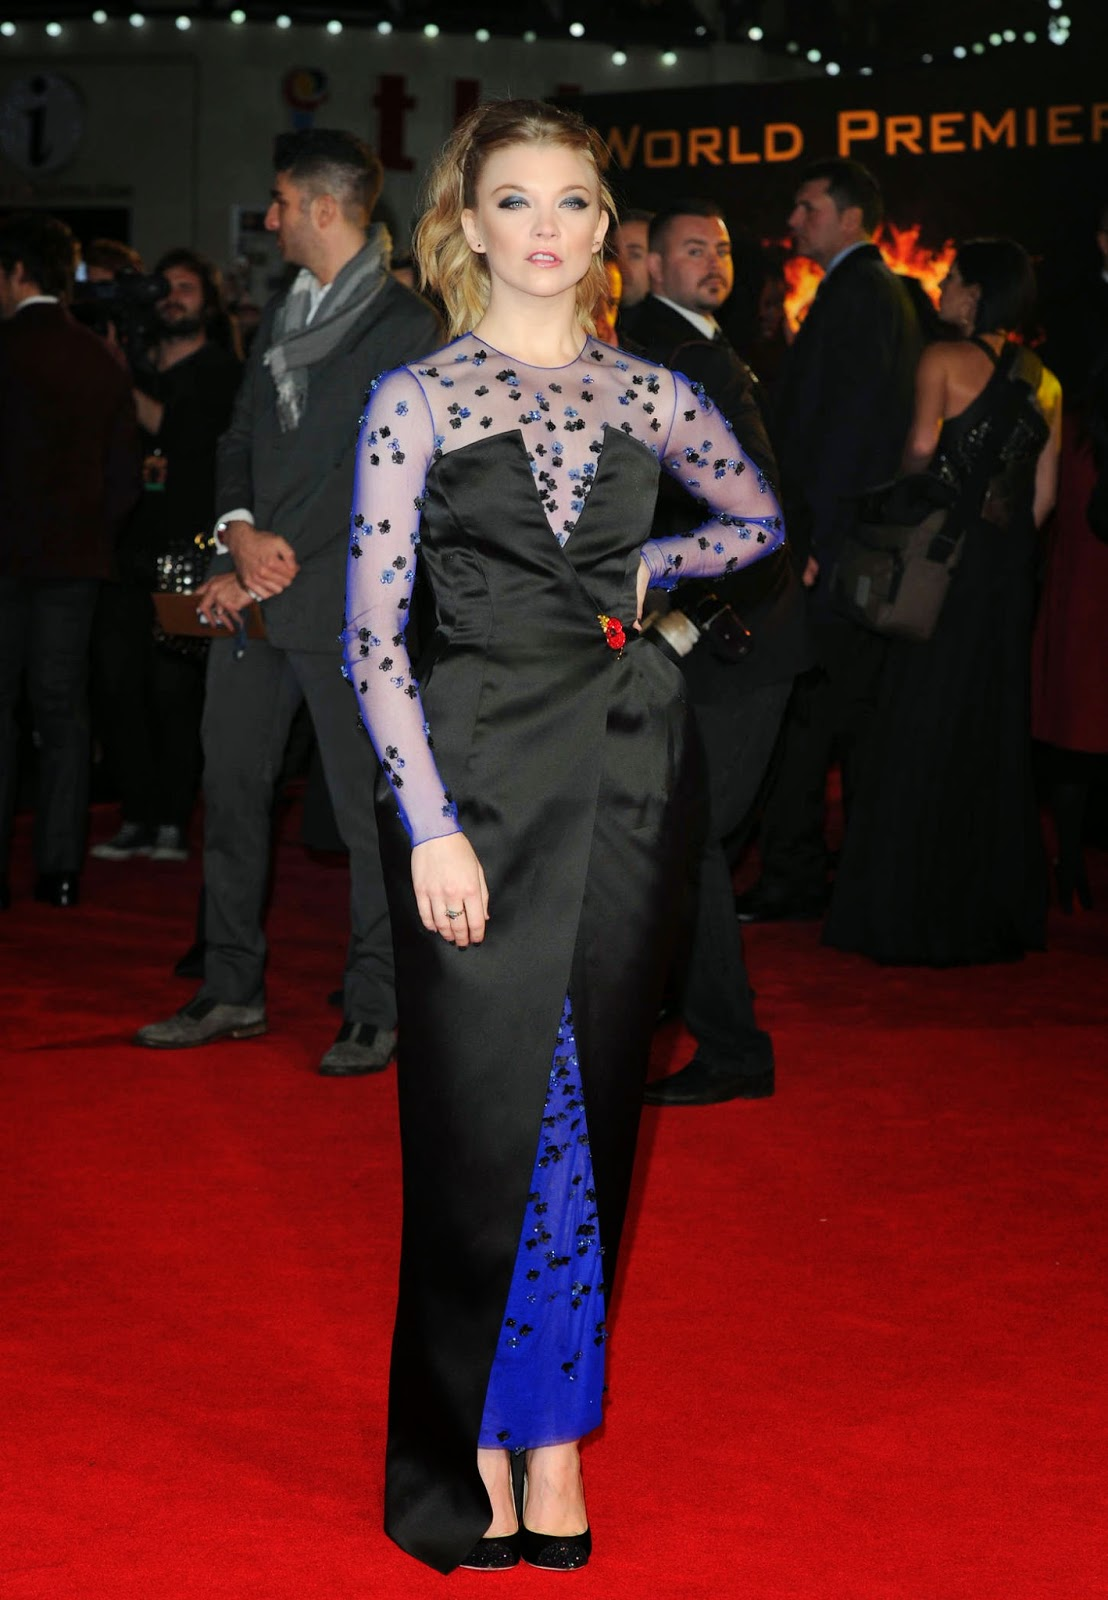 Natalie Dormer at Premiere of 'The Hunger Games: Mockingjay Part 1′ in London